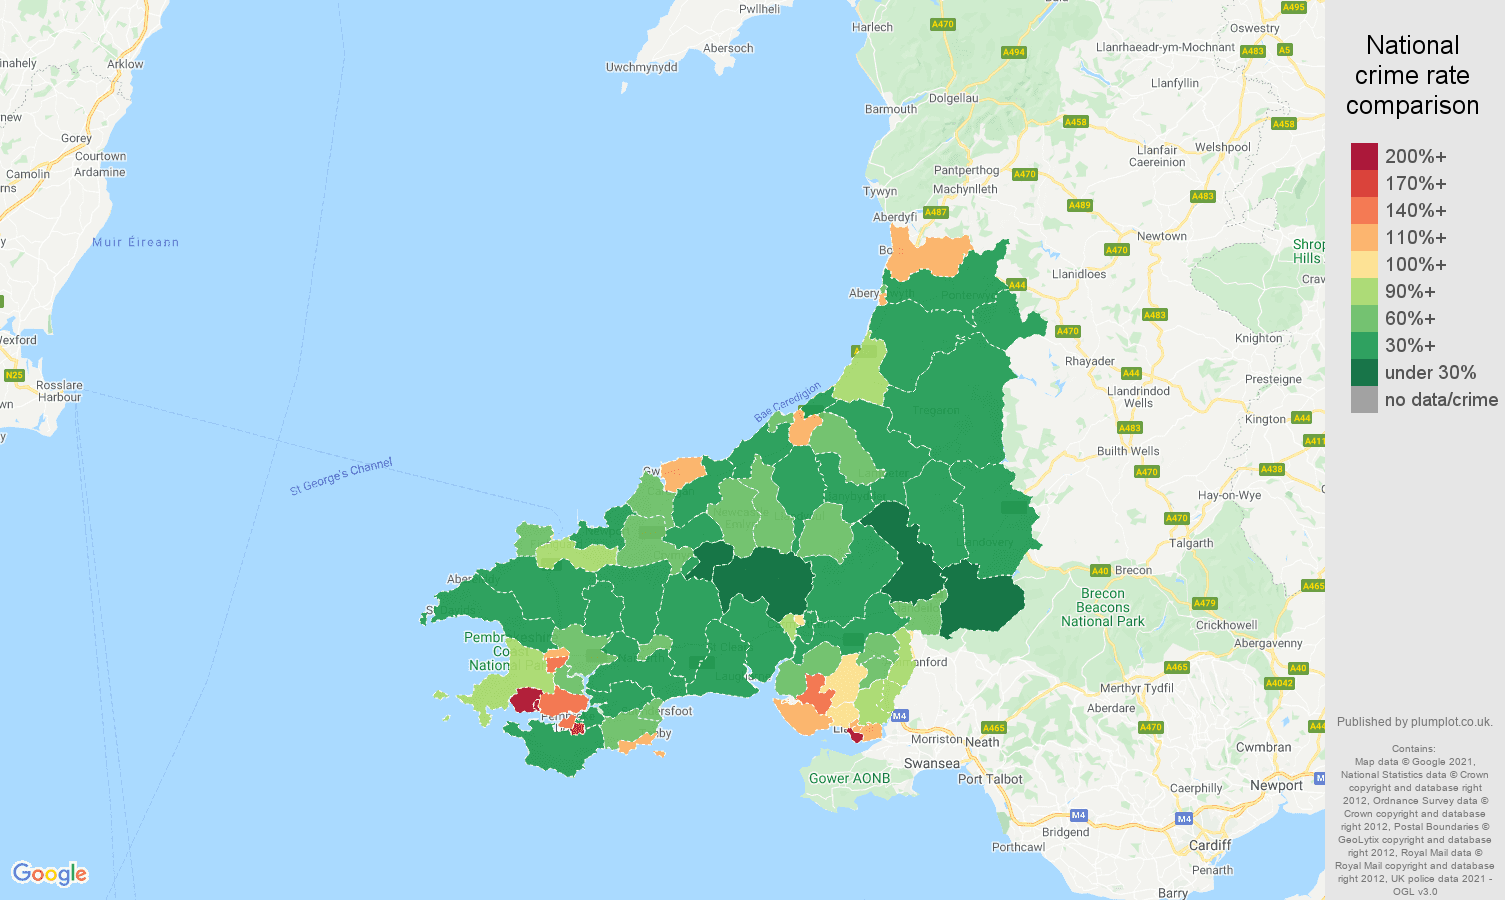 Dyfed violent crime rate comparison map